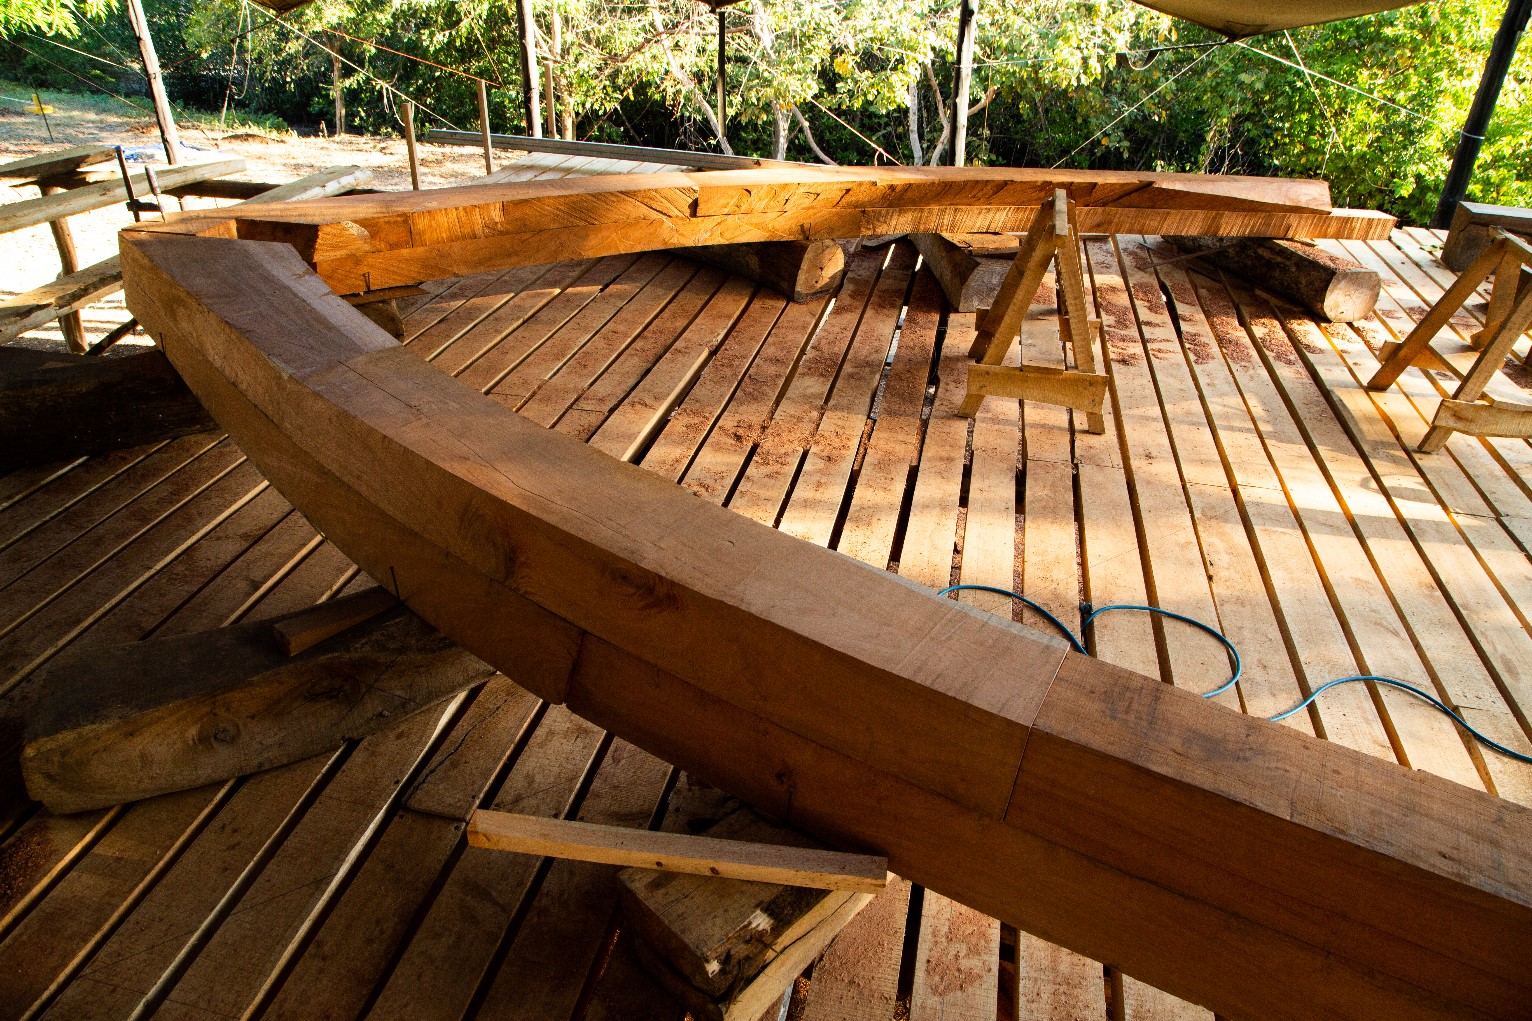 Framing tallship  Ceiba  at Astillero Verde . This framing deck is built of all local Cypress trees, and the frame itself is of sustinably-sourced Spanish Cedar.    Photo: Jeremy Starn.